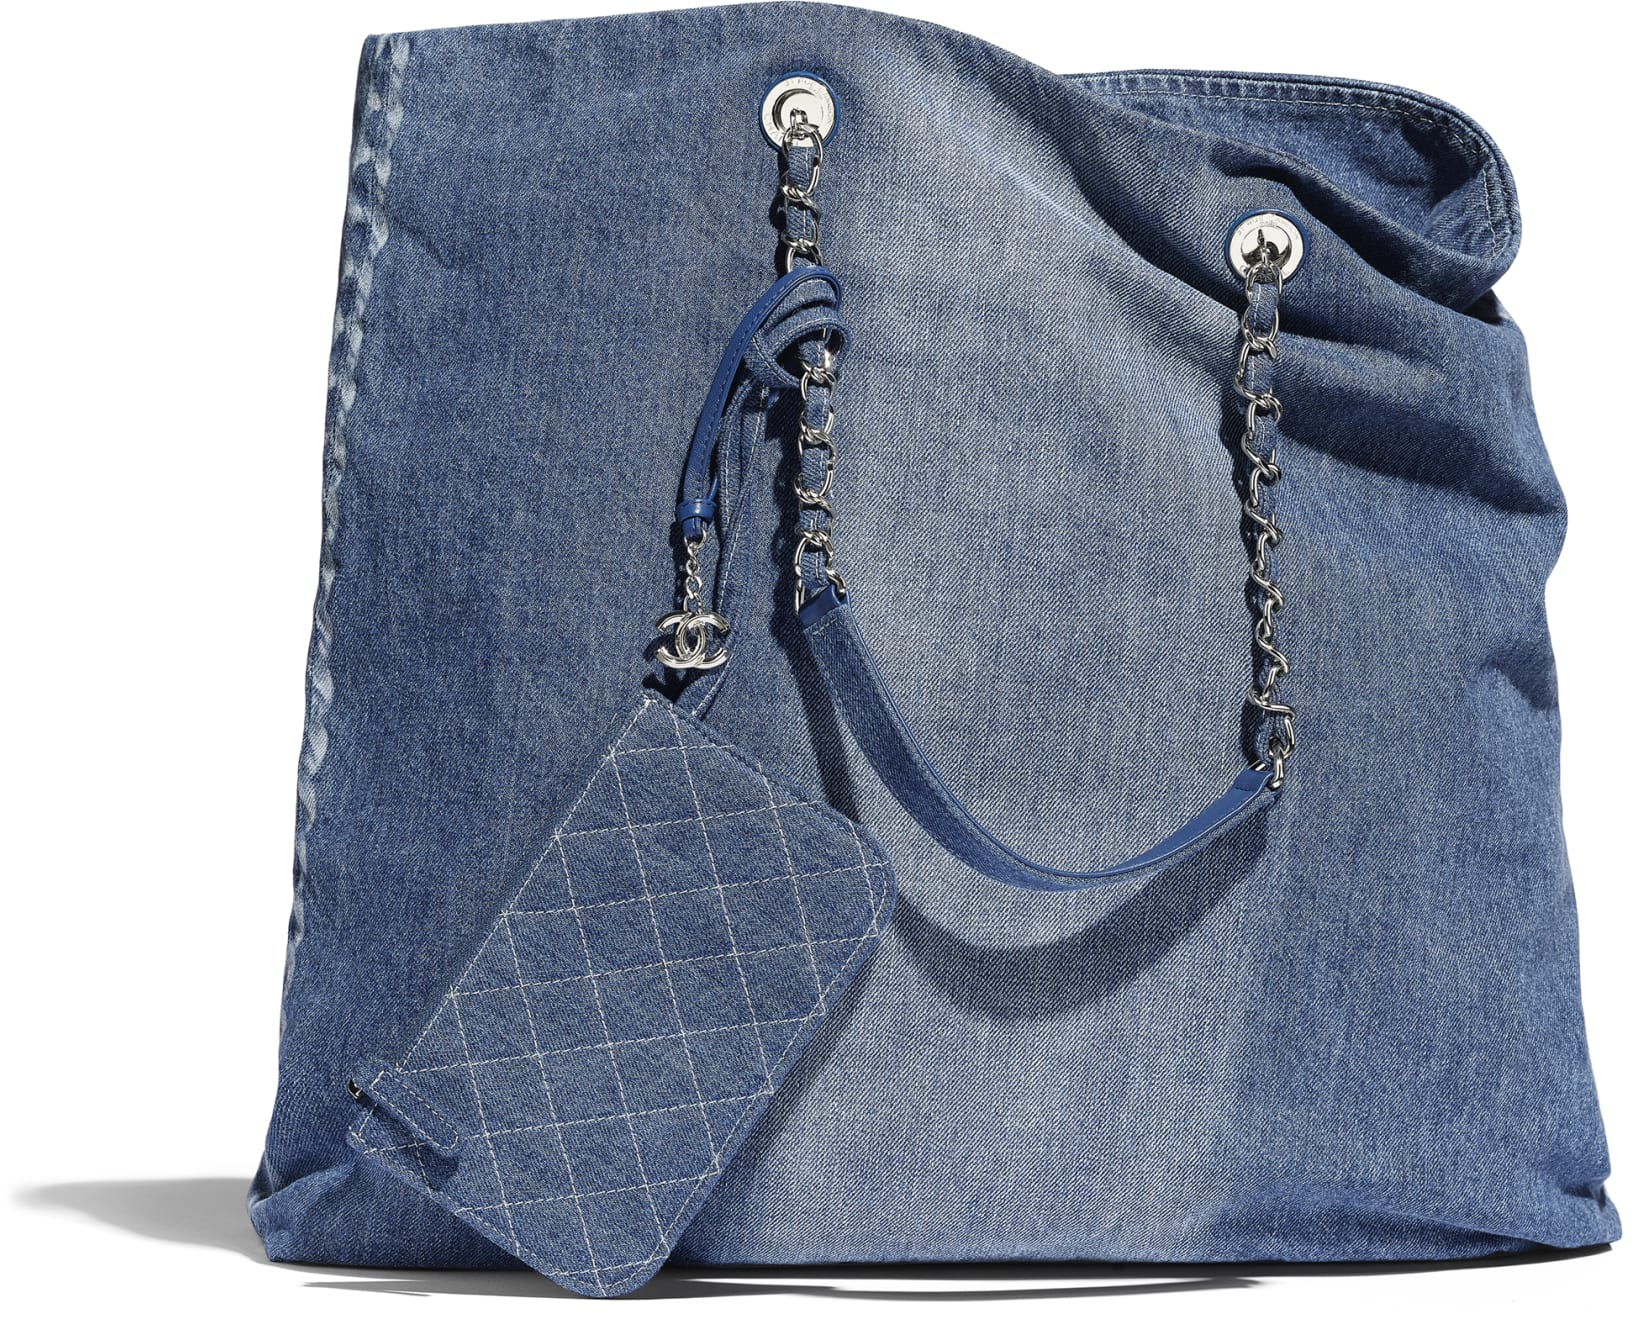 Borsa da giorno grande in denim Chanel a 2650 euro